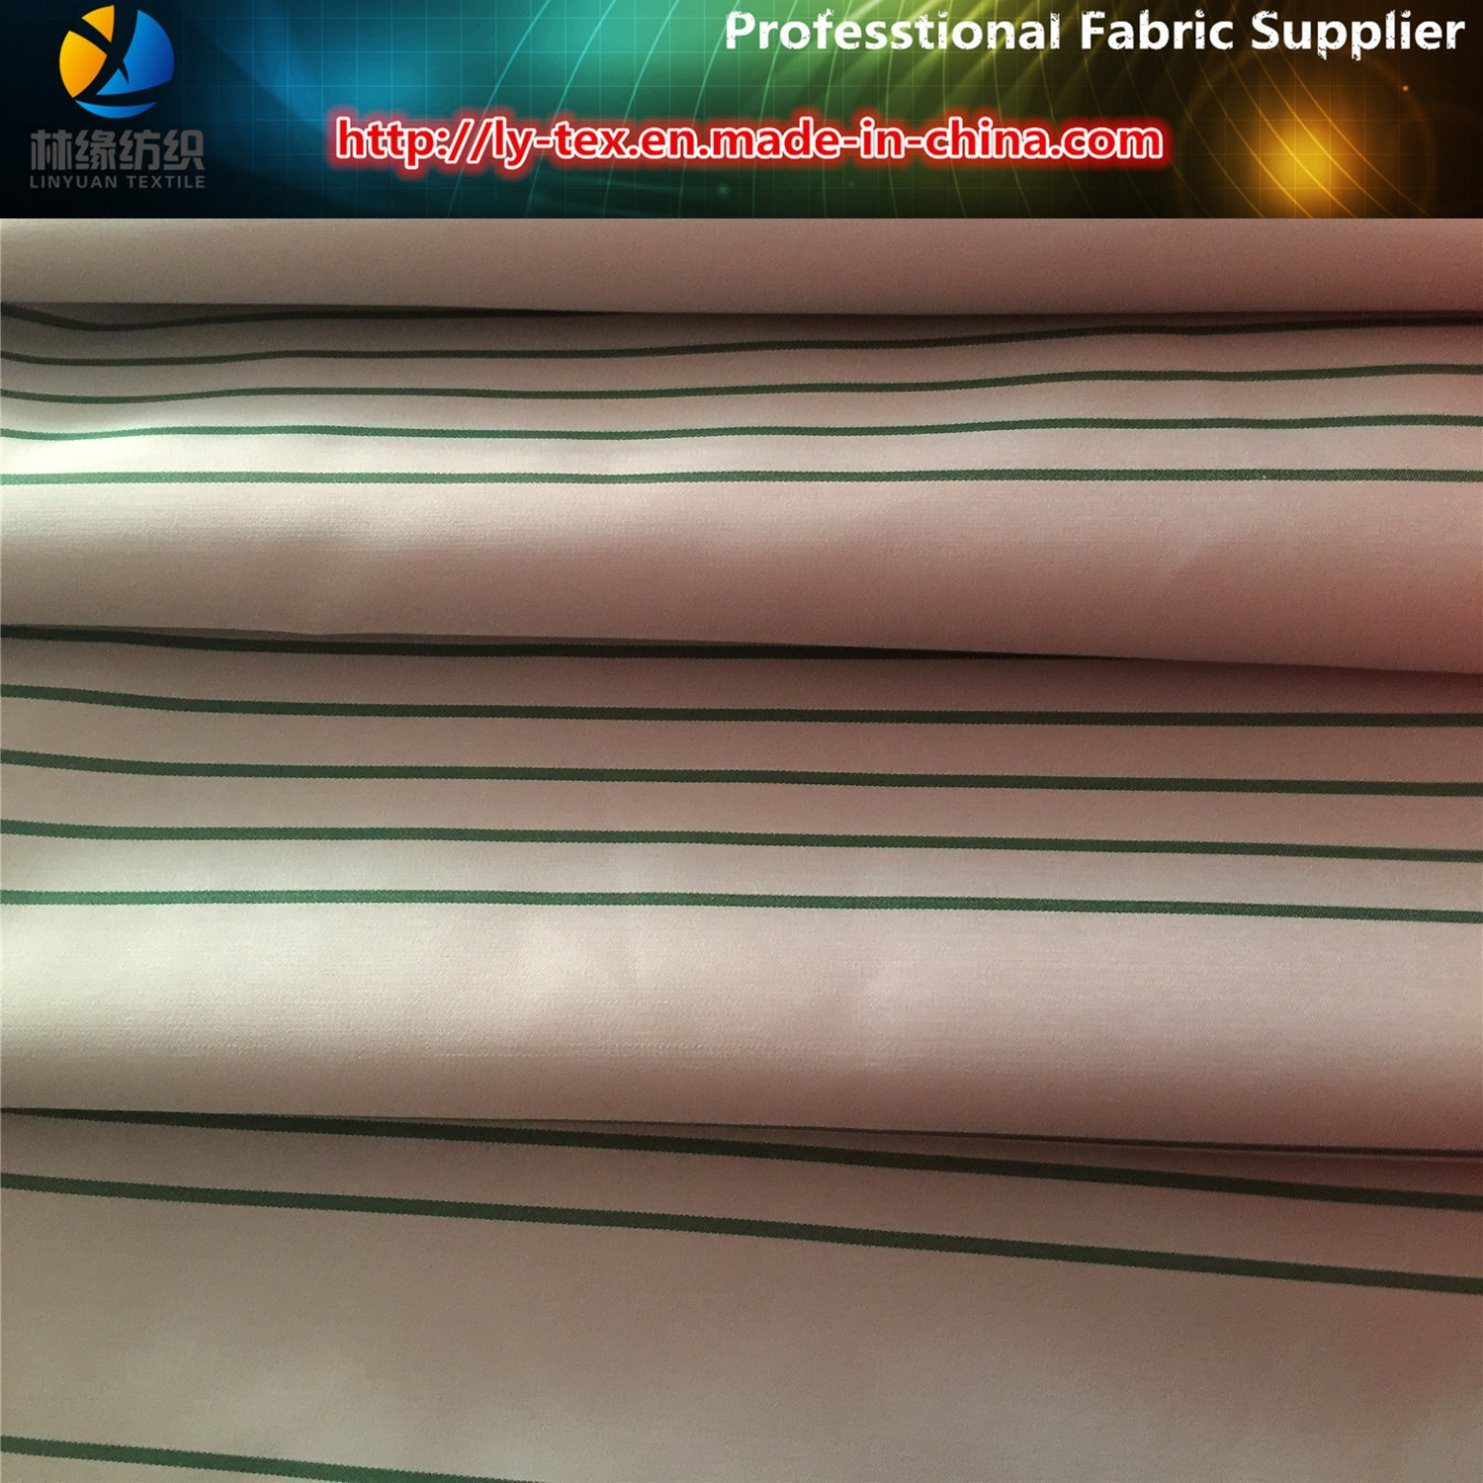 High Density Polyester Stripe Satin Yarn Dyed Fabric for Down Jacket